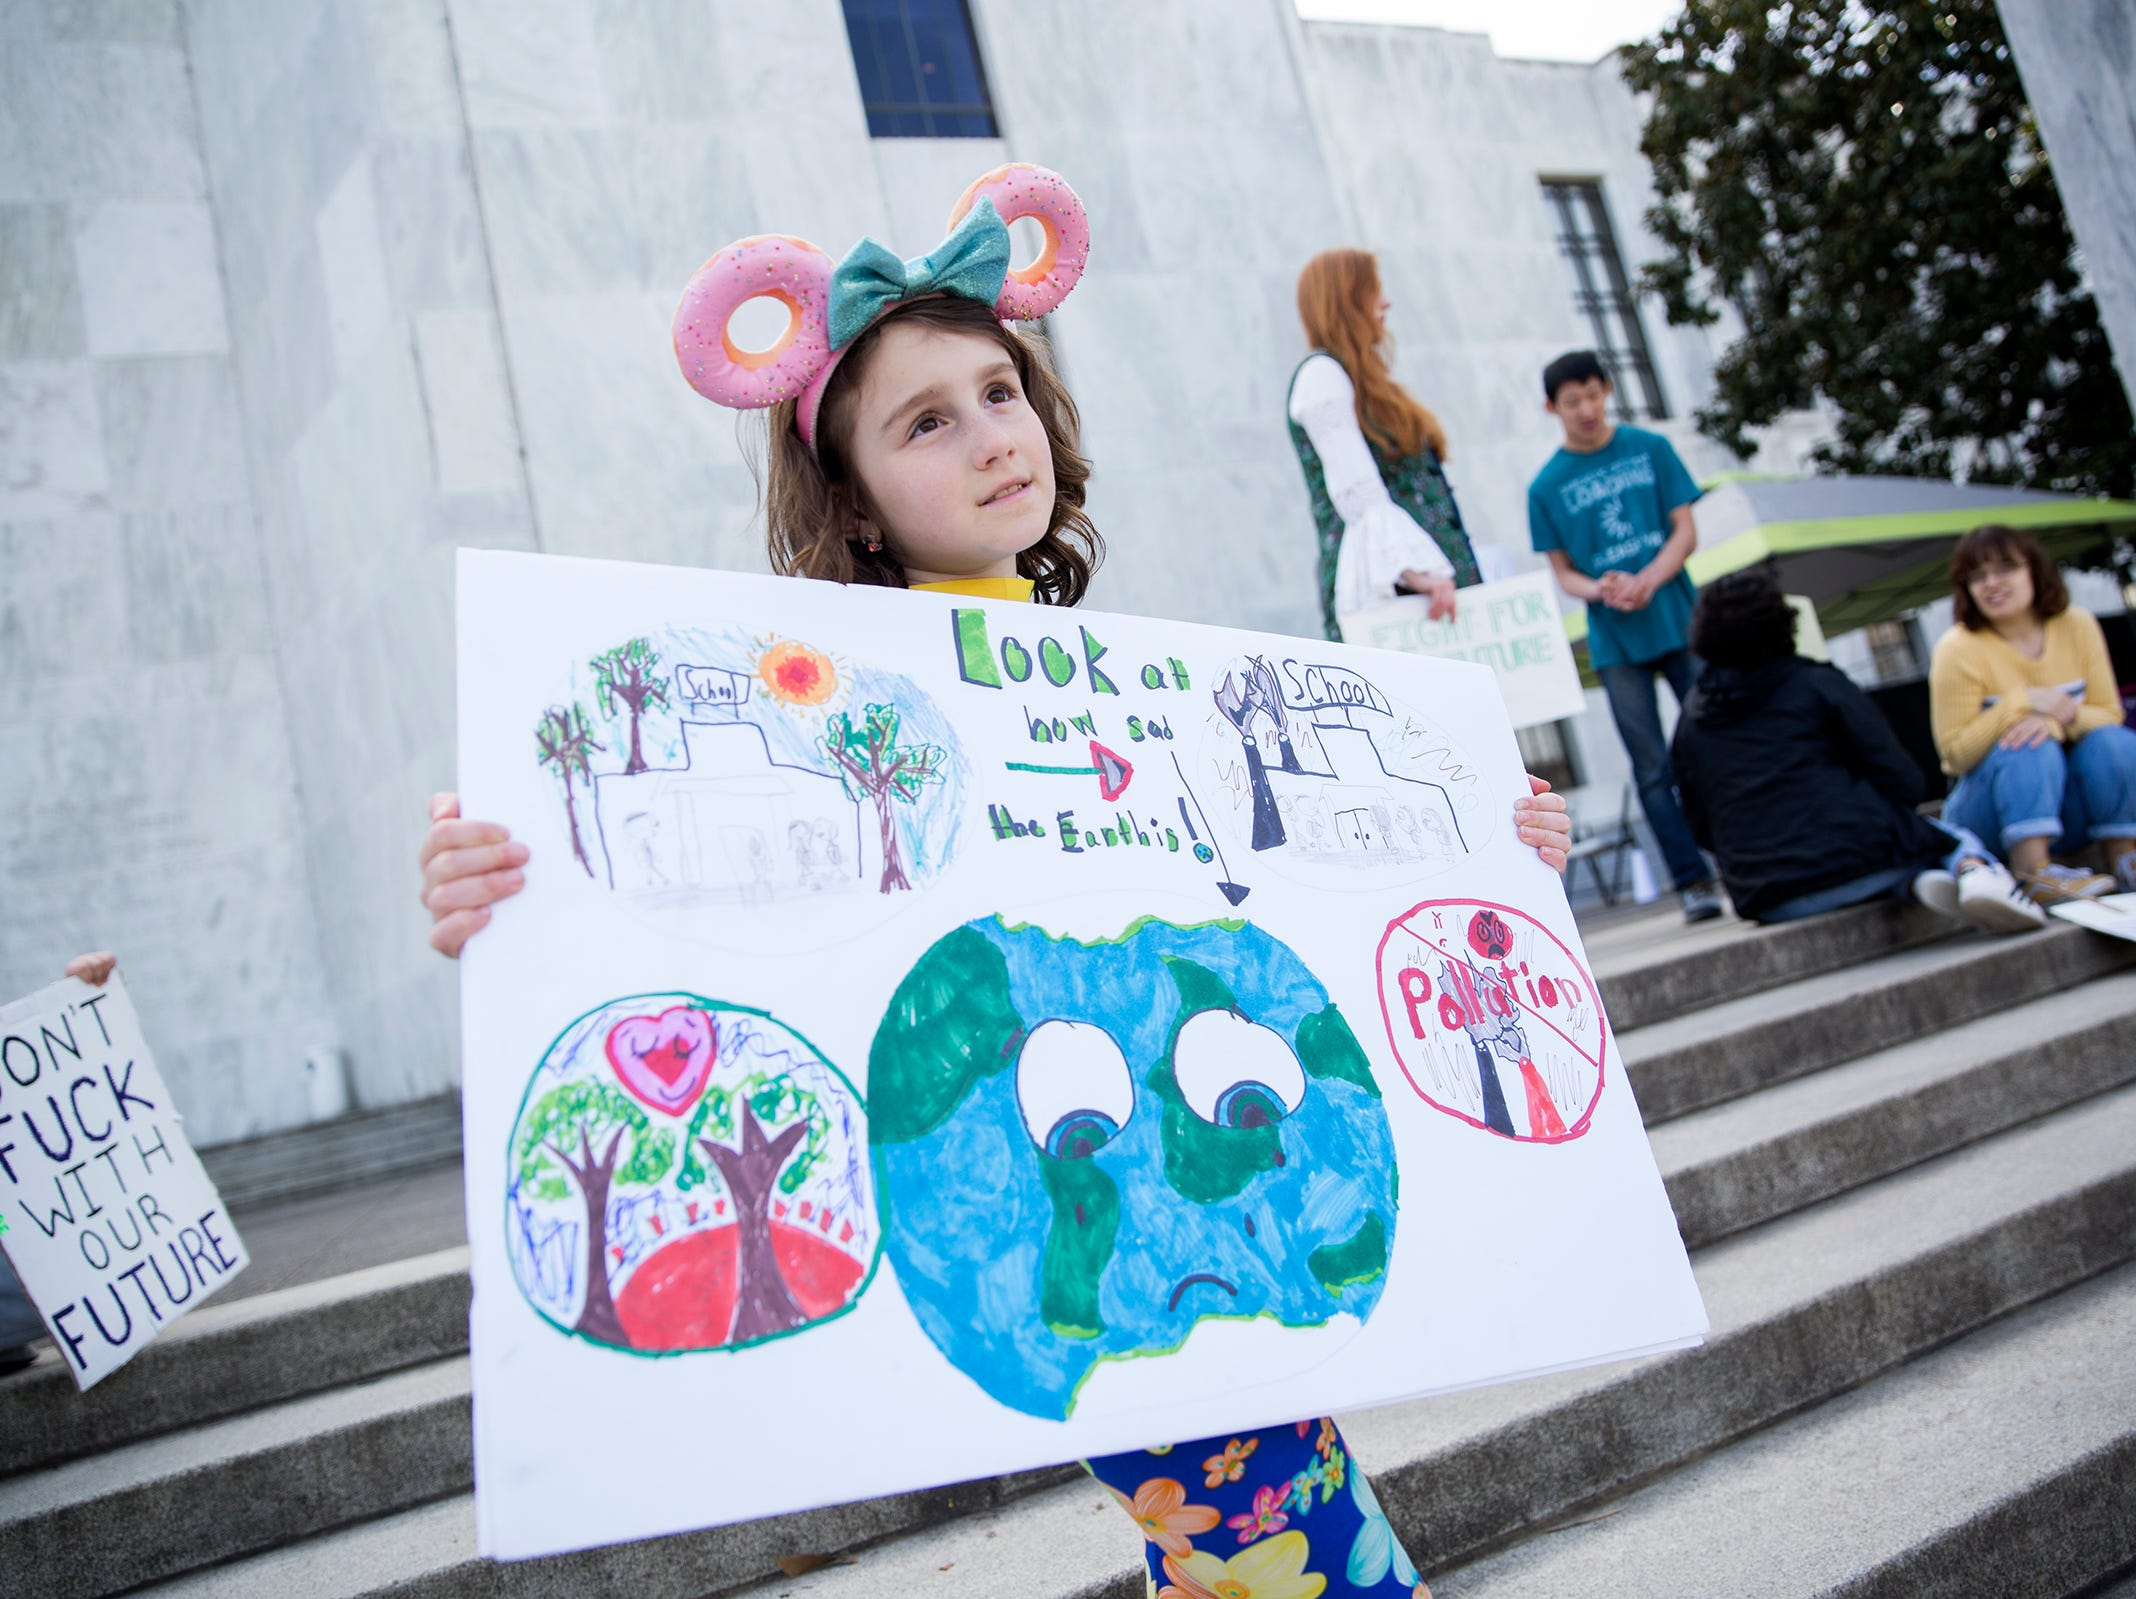 Amaya Woolley, 8, holds a sign during a student rally for climate change, in support of the Global Climate Strike and National Youth Climate Strike, at the Oregon State Capitol Building on March 15, 2019.